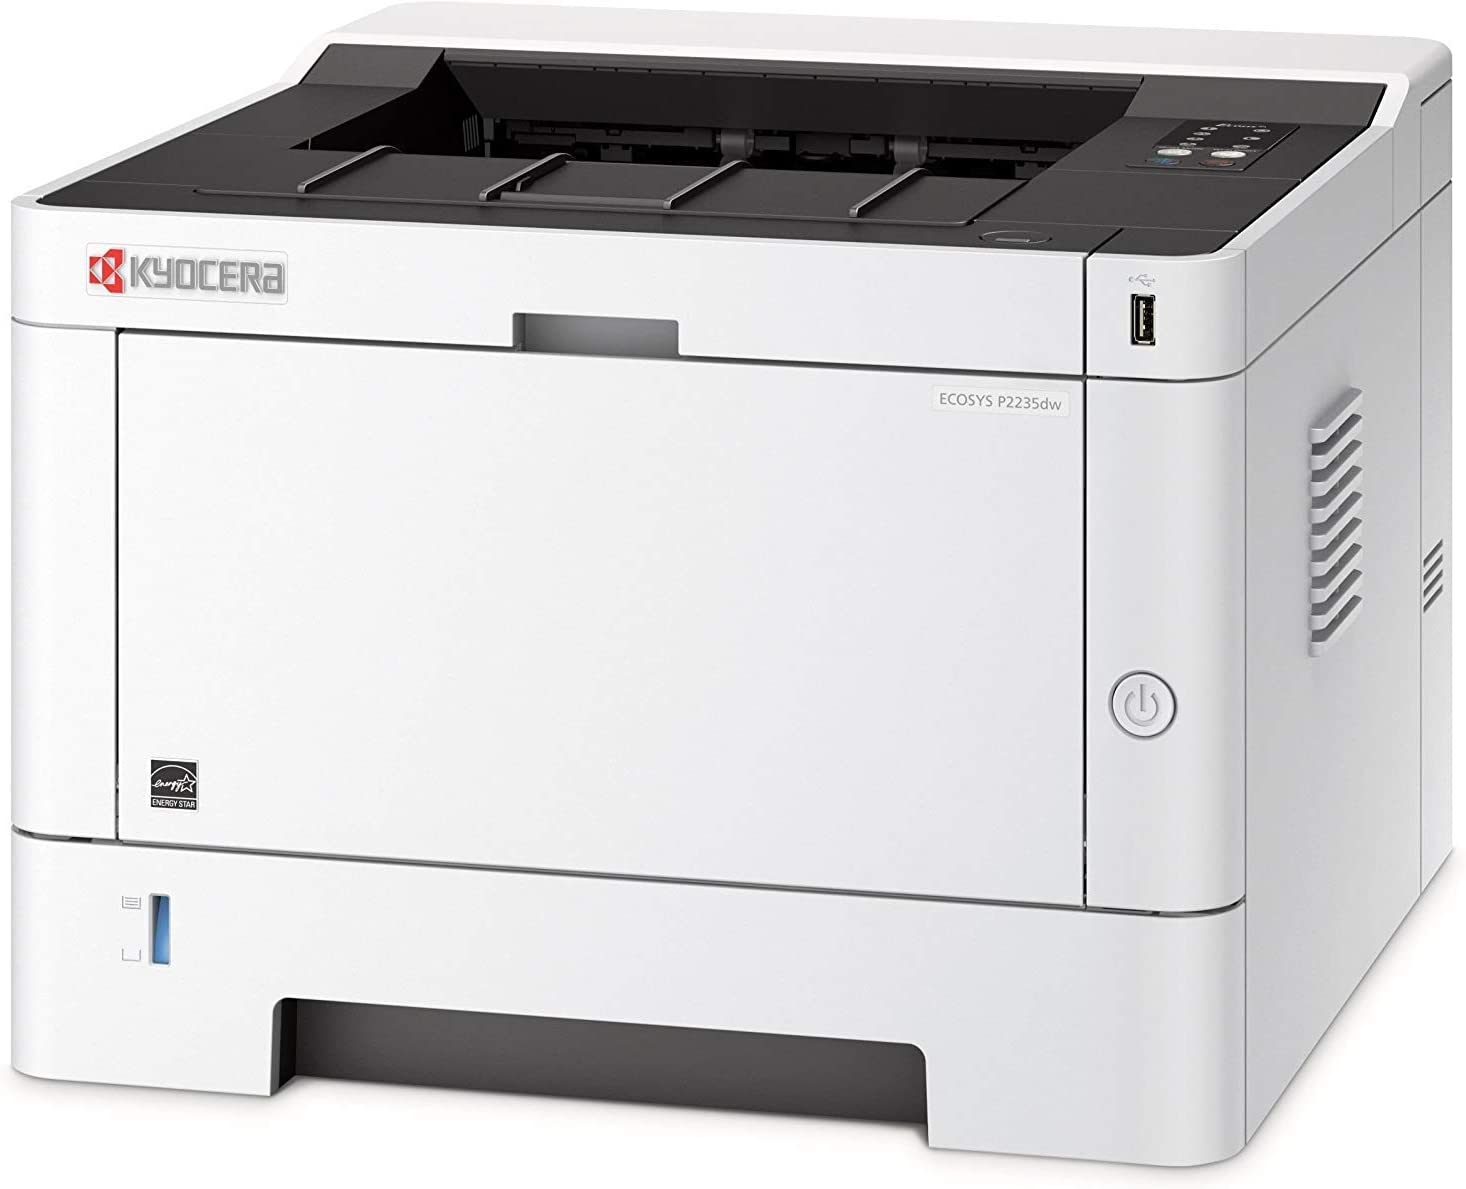 Kyocera Document Solutions ECOSYS-P2235dw Black and White Network Printer